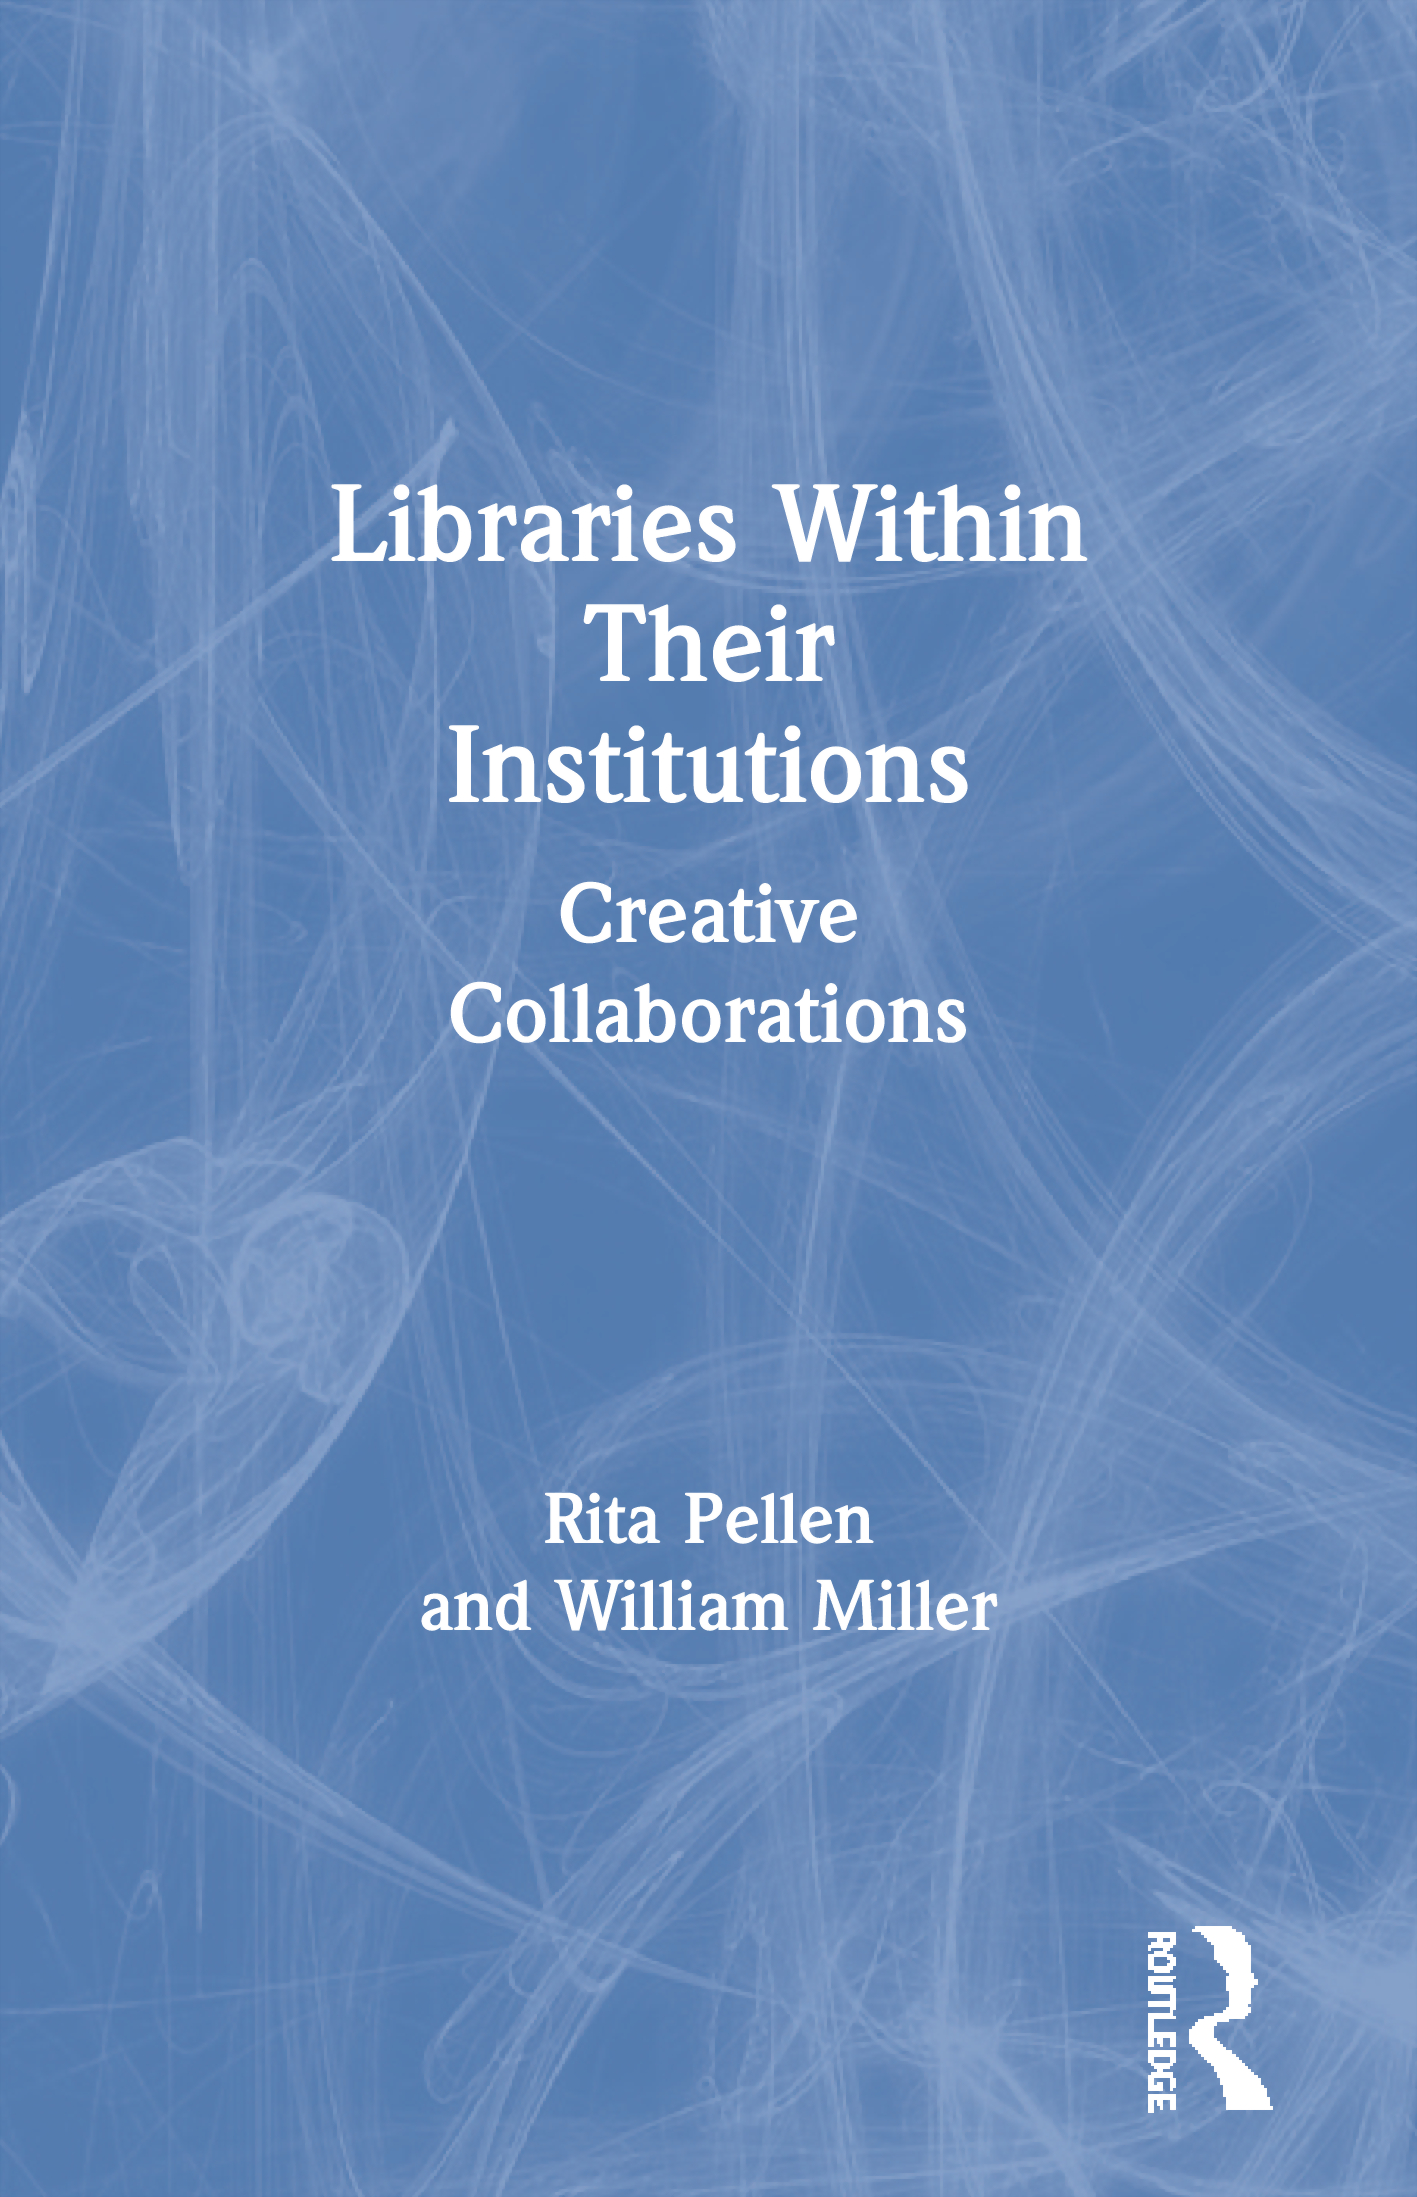 Libraries Within Their Institutions: Creative Collaborations book cover